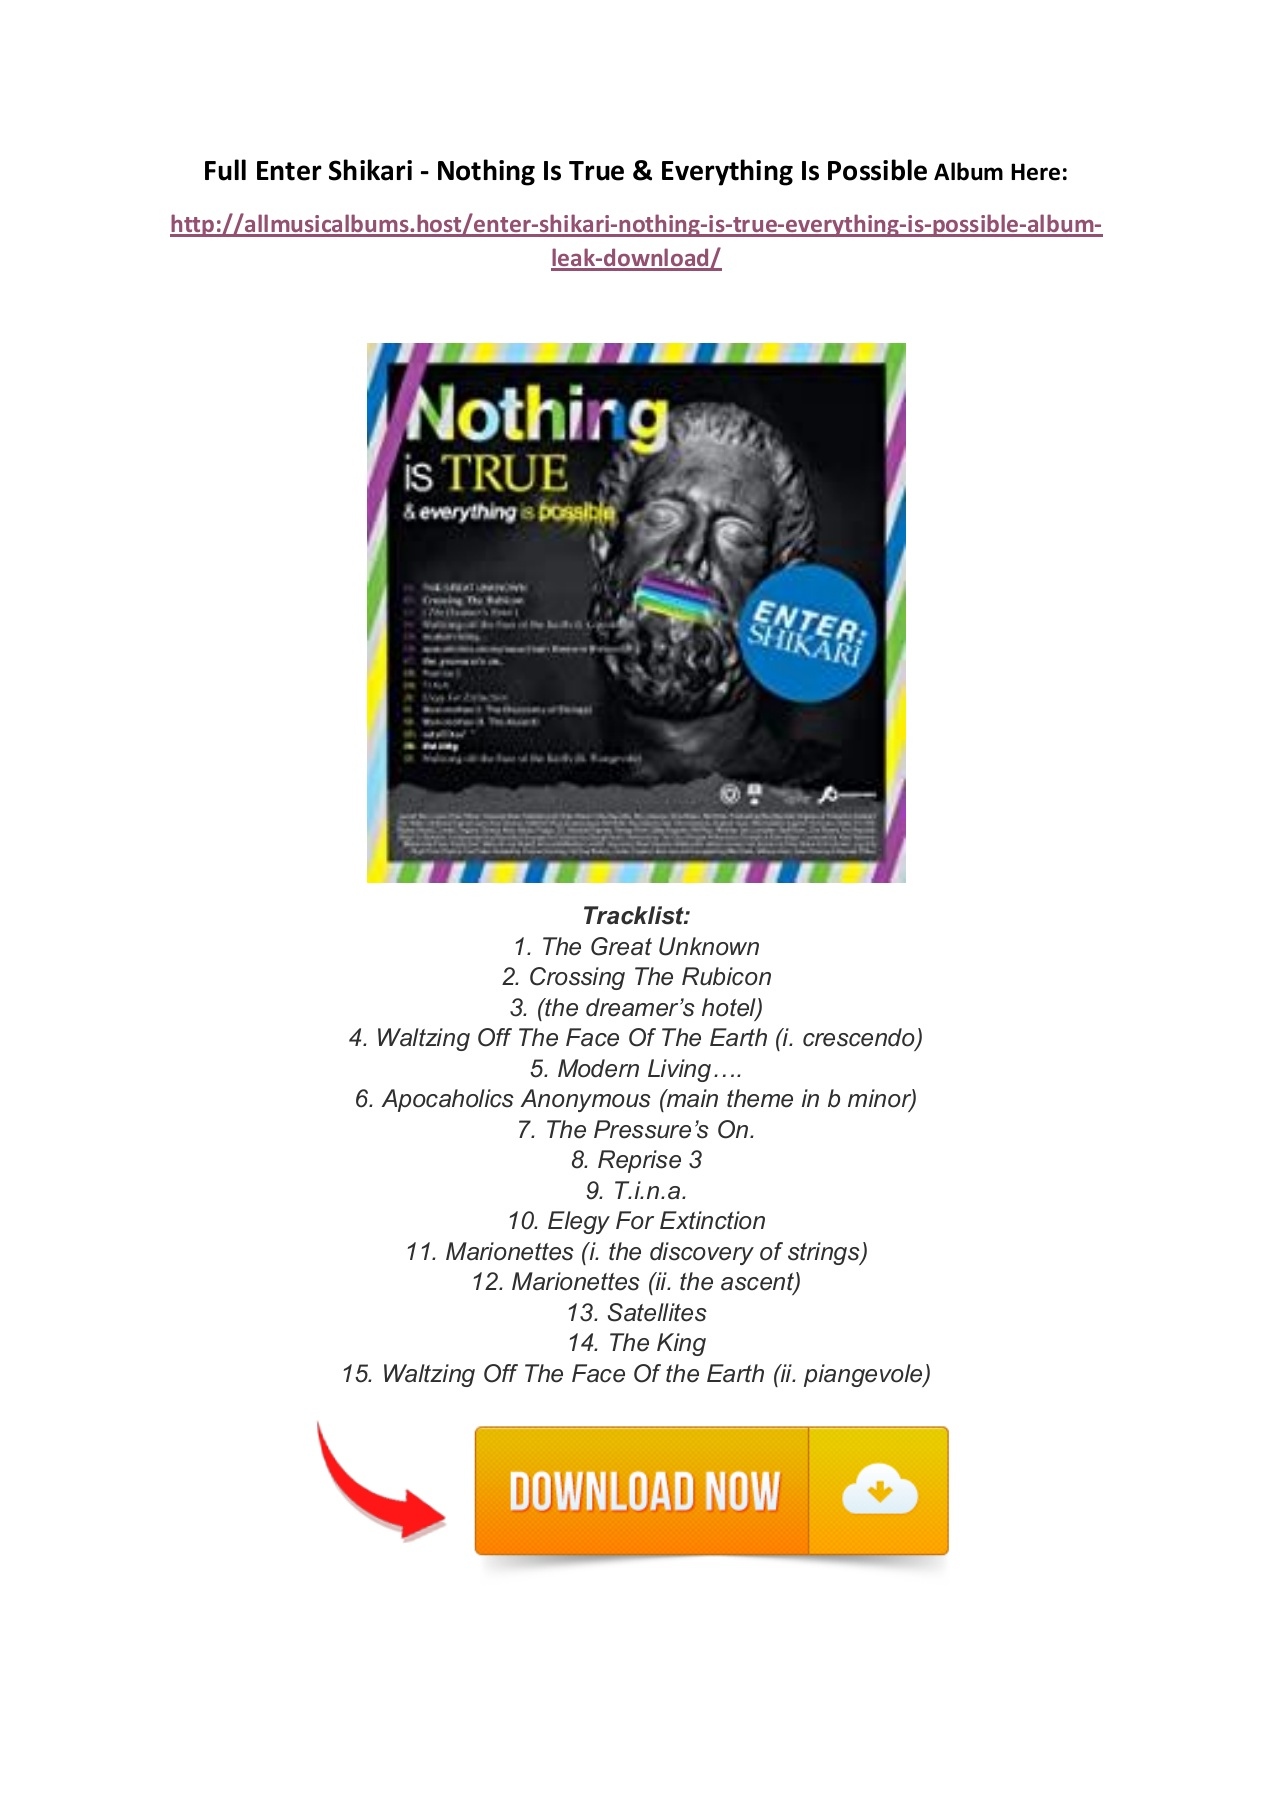 Download Download The Album About Nothing Zip Pics